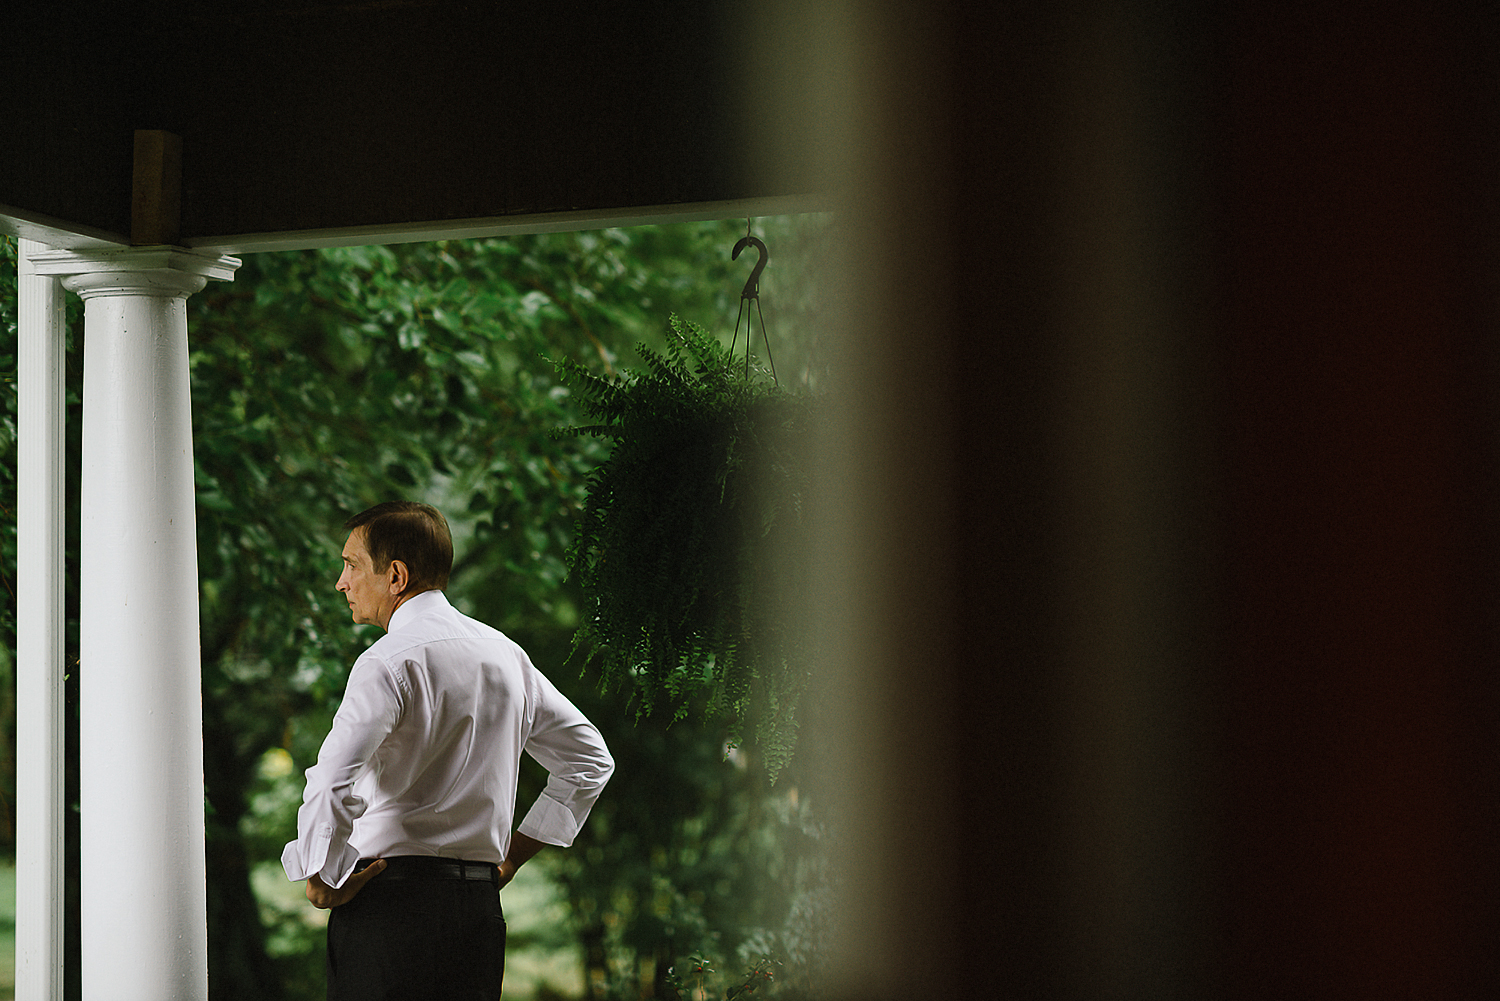 Best-Moody-Documentary-Wedding-Photography-Vintage-Small-Town-Chapel-Wedding-Toronto-Ontario_Father-of-Bride-Candid-Portrait.jpg